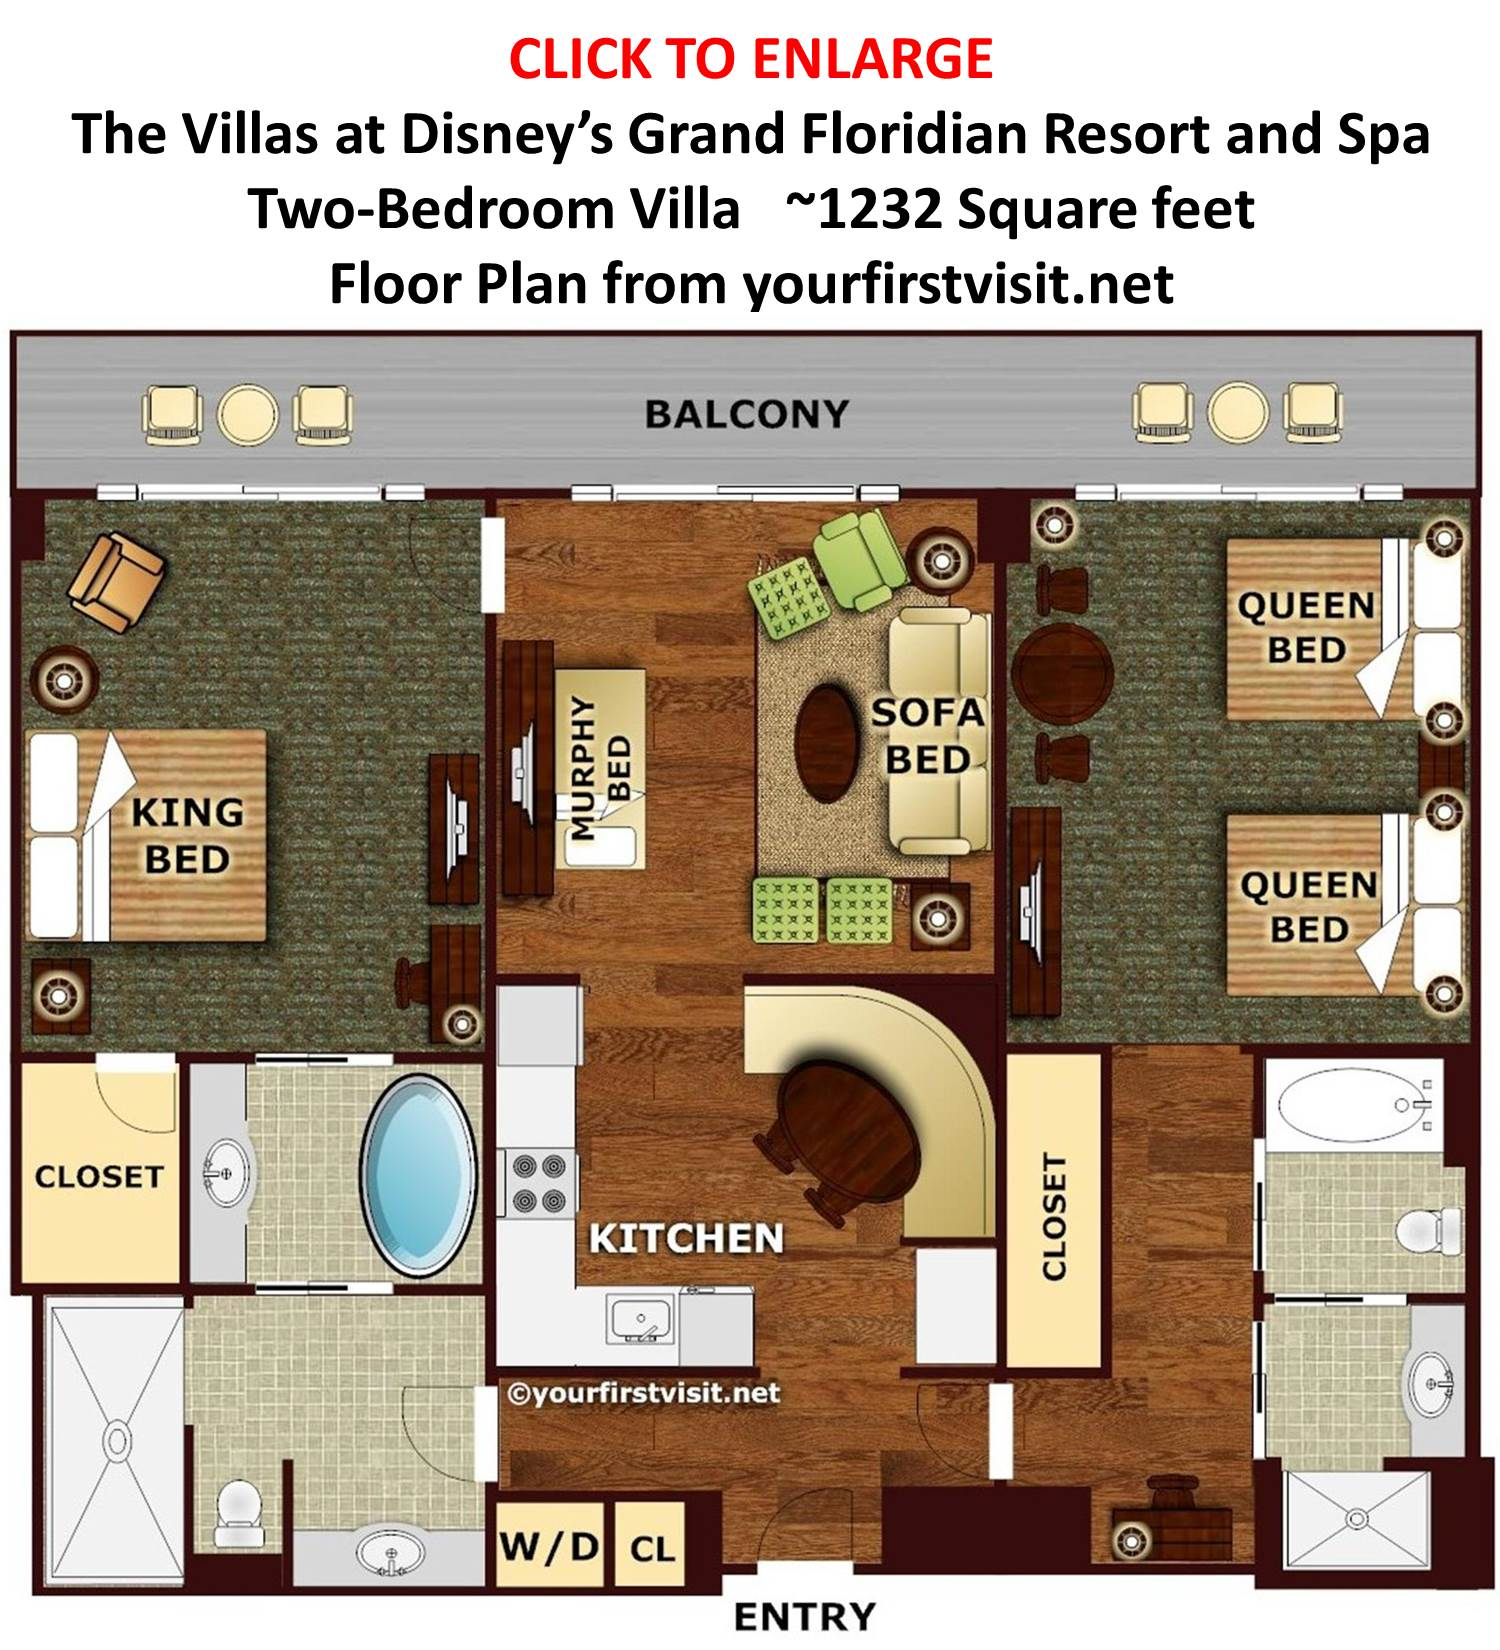 Kidani Village 2 Bedroom Villa Floor Plan Review The Villas At Disney S Grand Floridian Resort